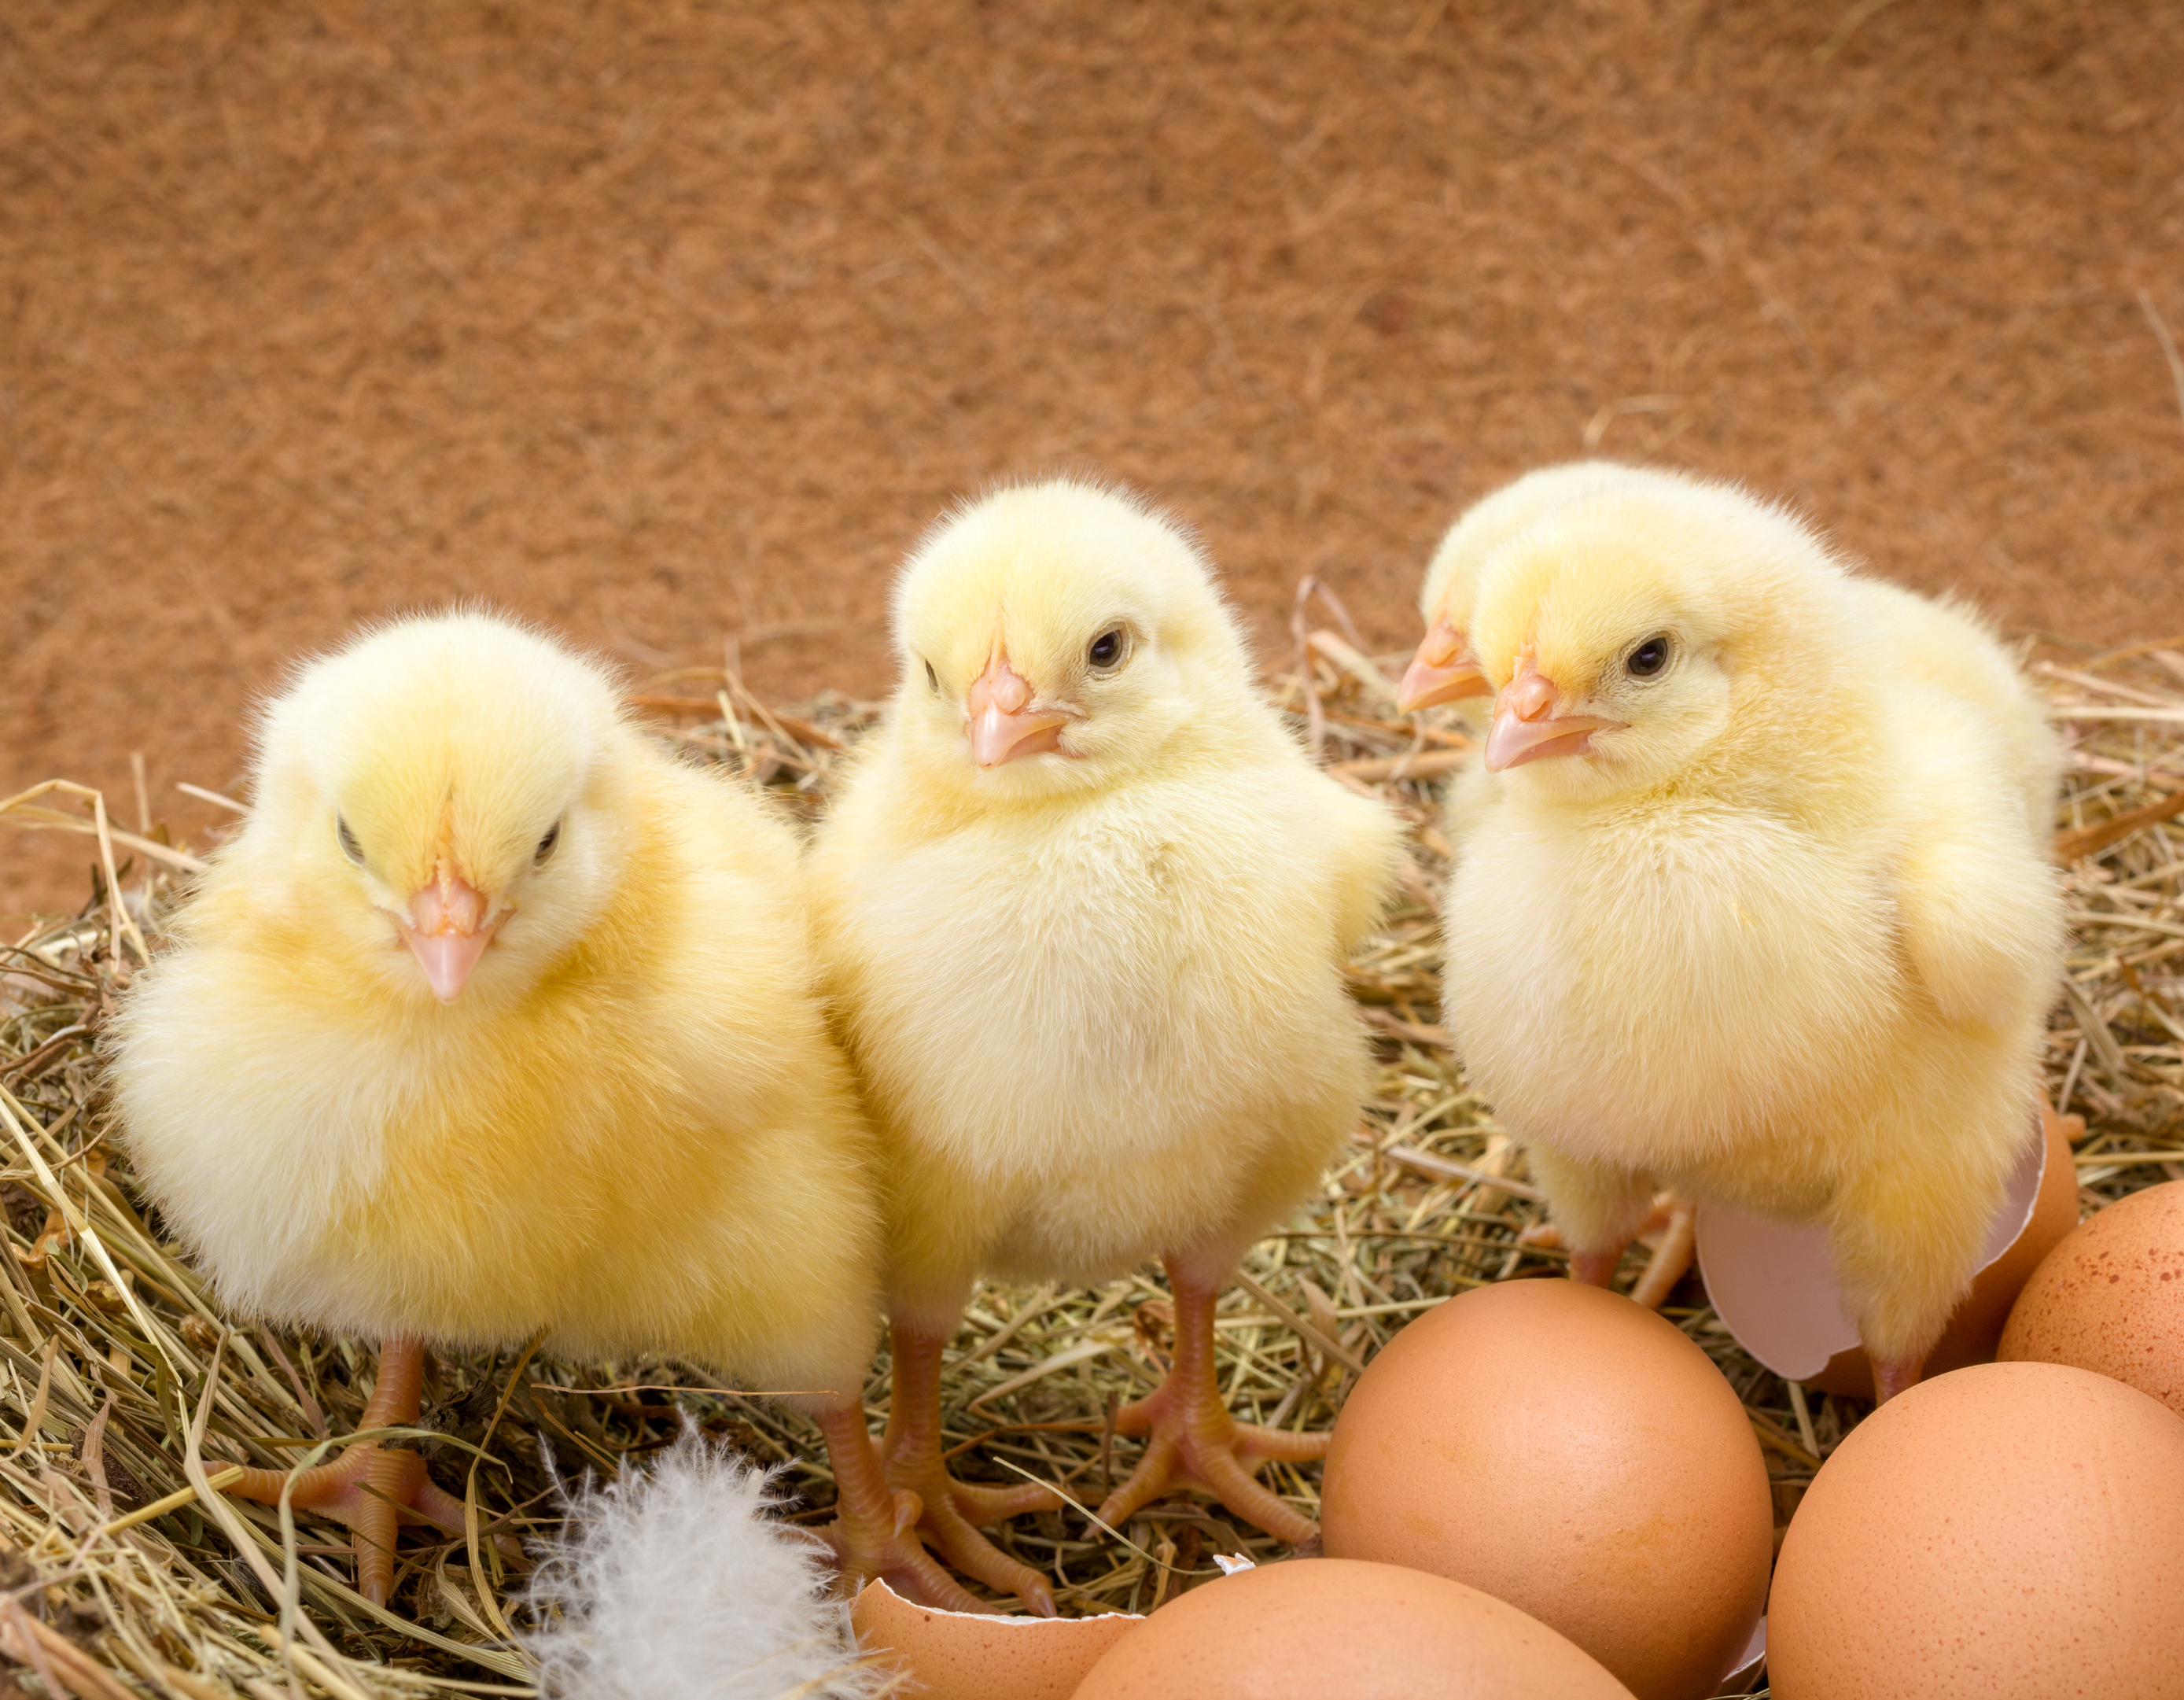 photodune-15857761-newborn-chickens-in-hay-nest-along-whole-and-broken-eggs-l